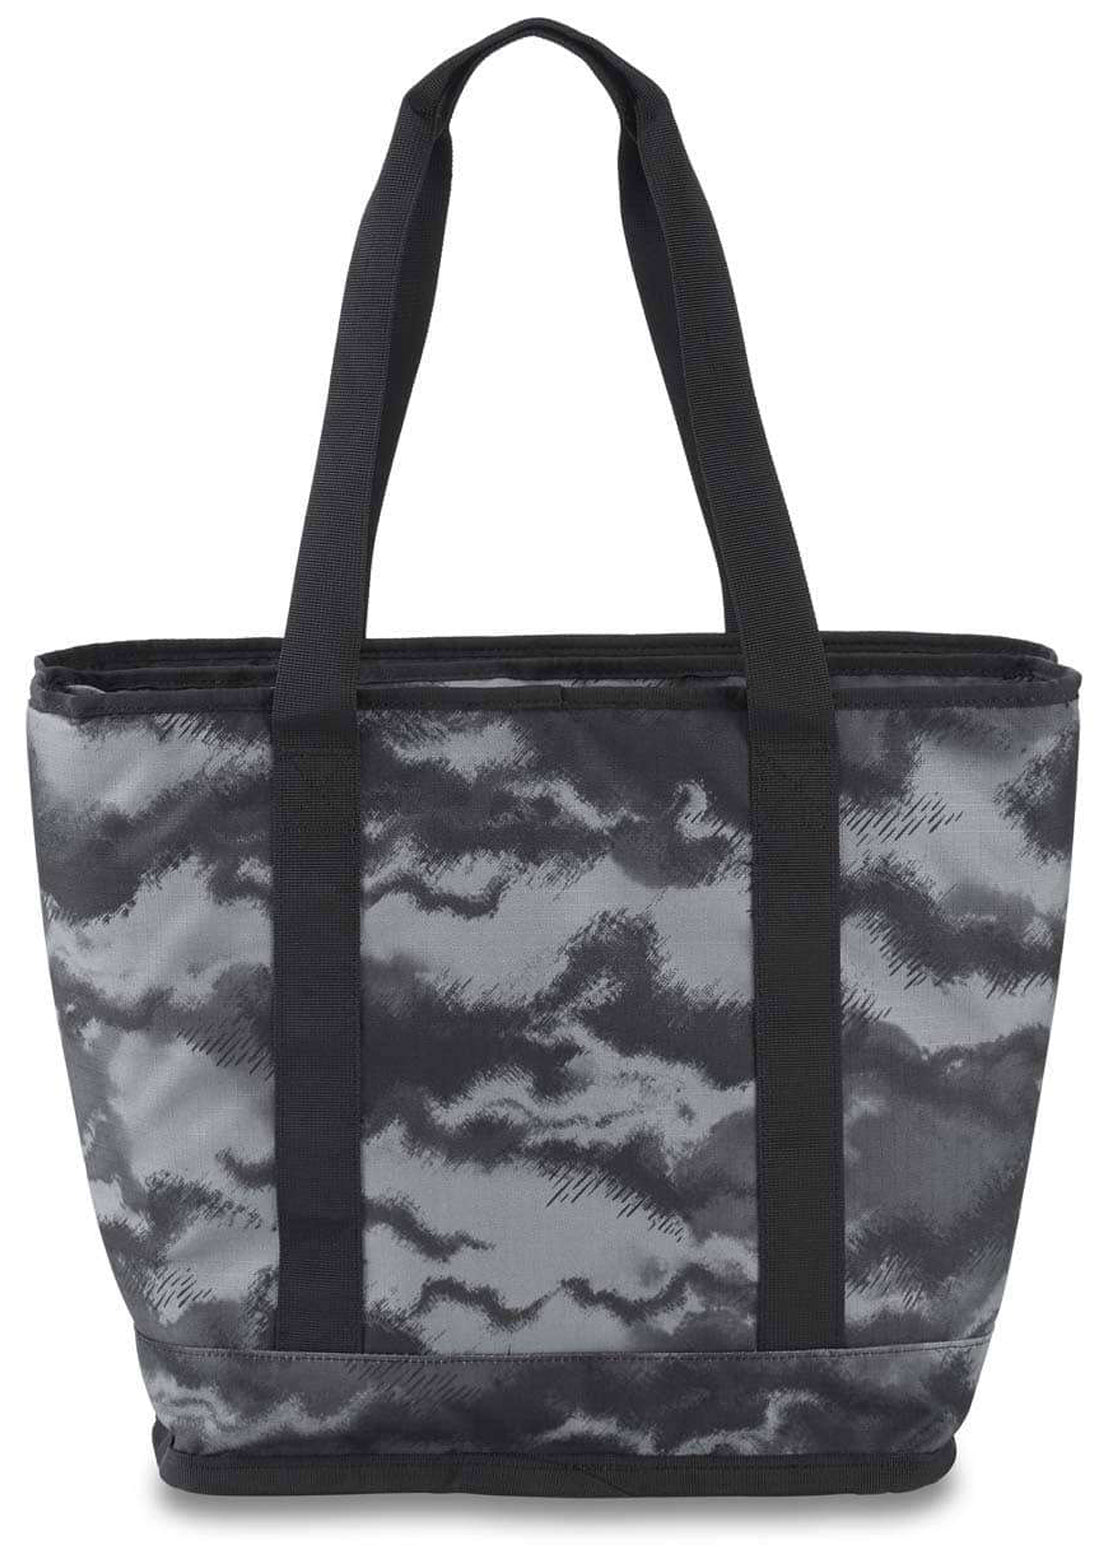 Dakine Party Tote Cooler Dark Ashcroft Camo